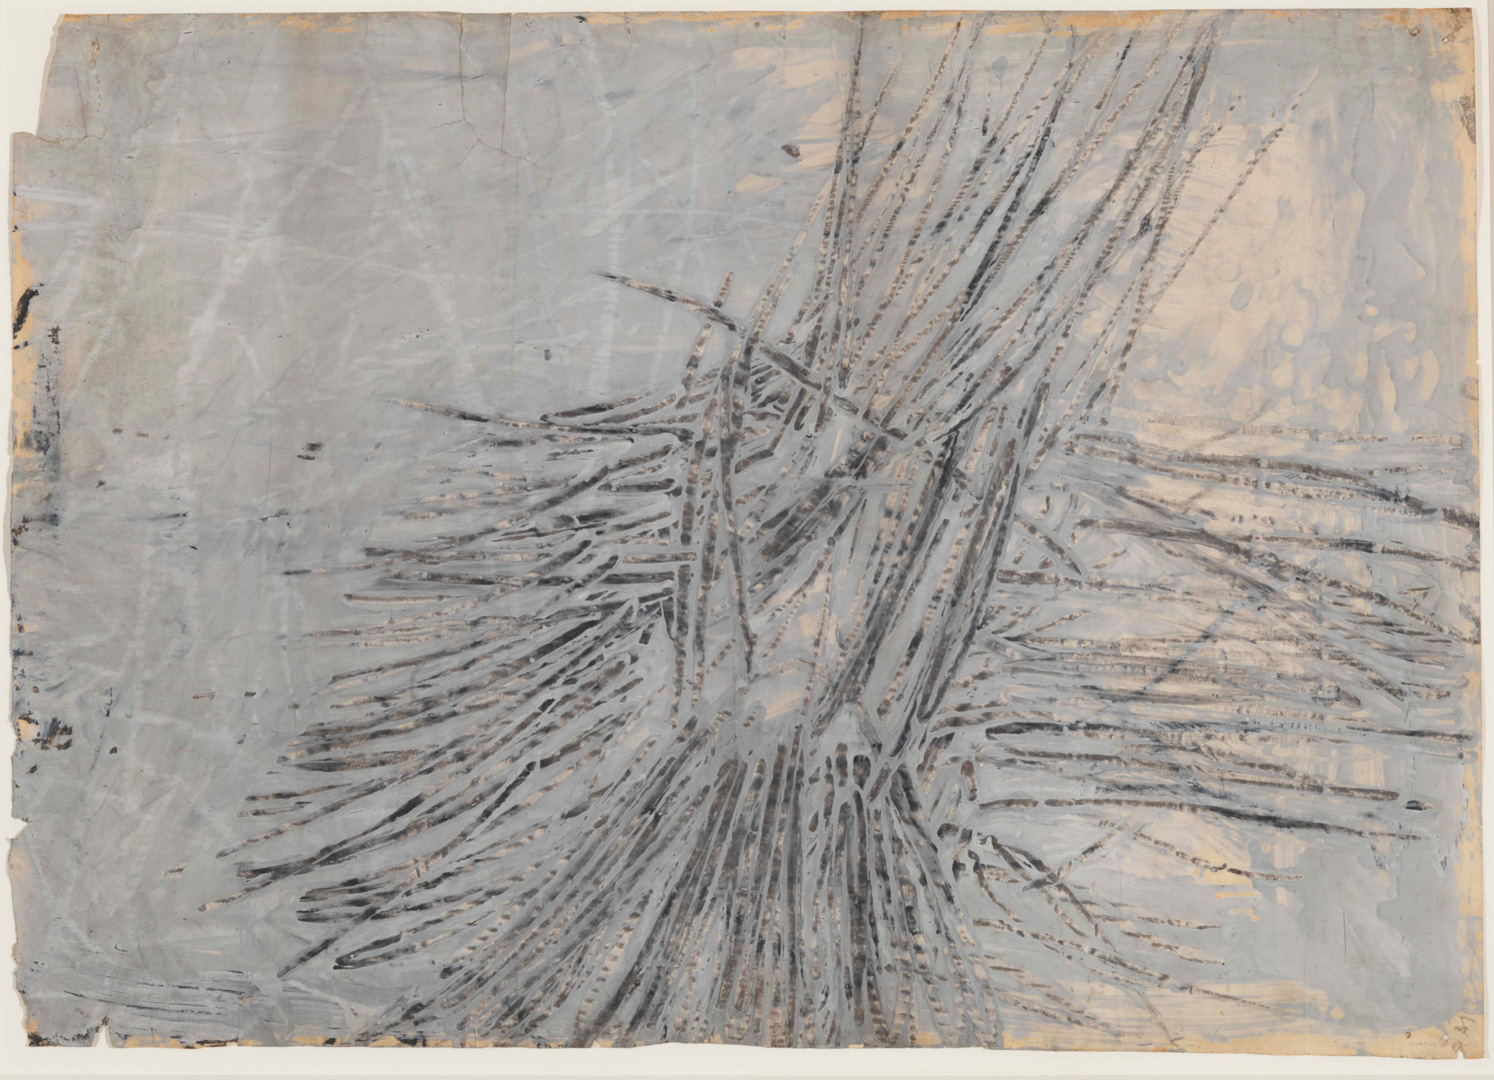 Cy Twombly - La-La, 1953, oil-based house paint and graphite on paper